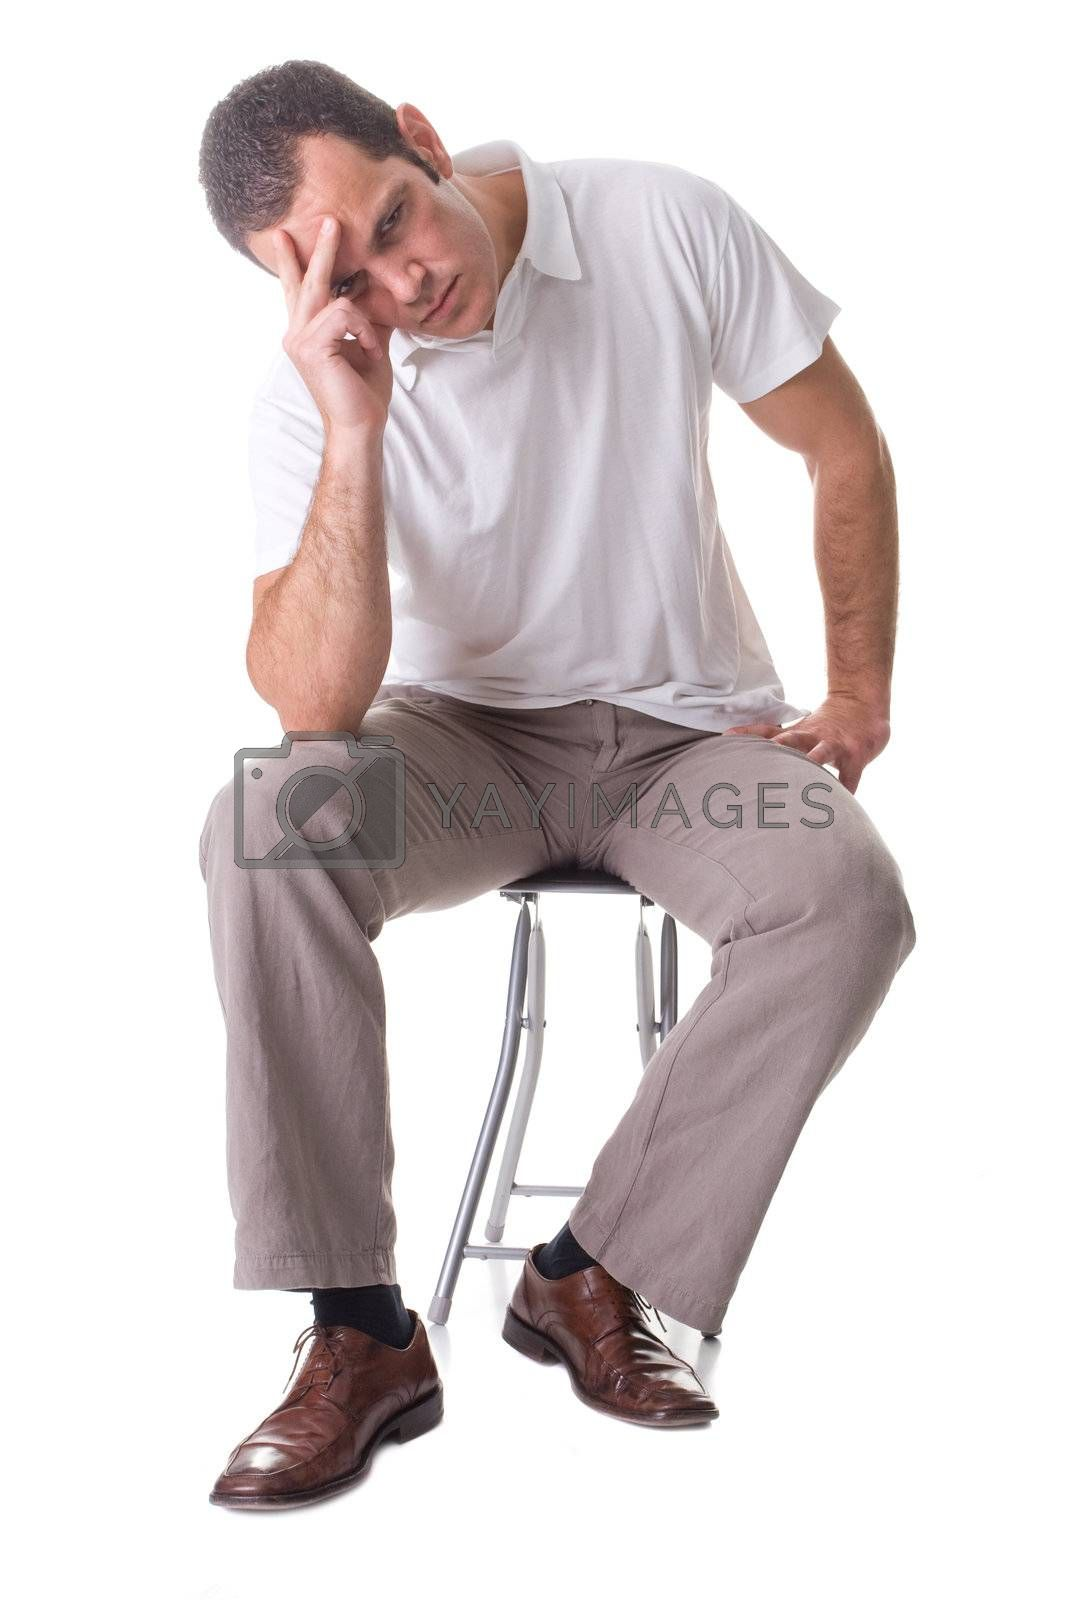 Royalty free image of Depression by ajn